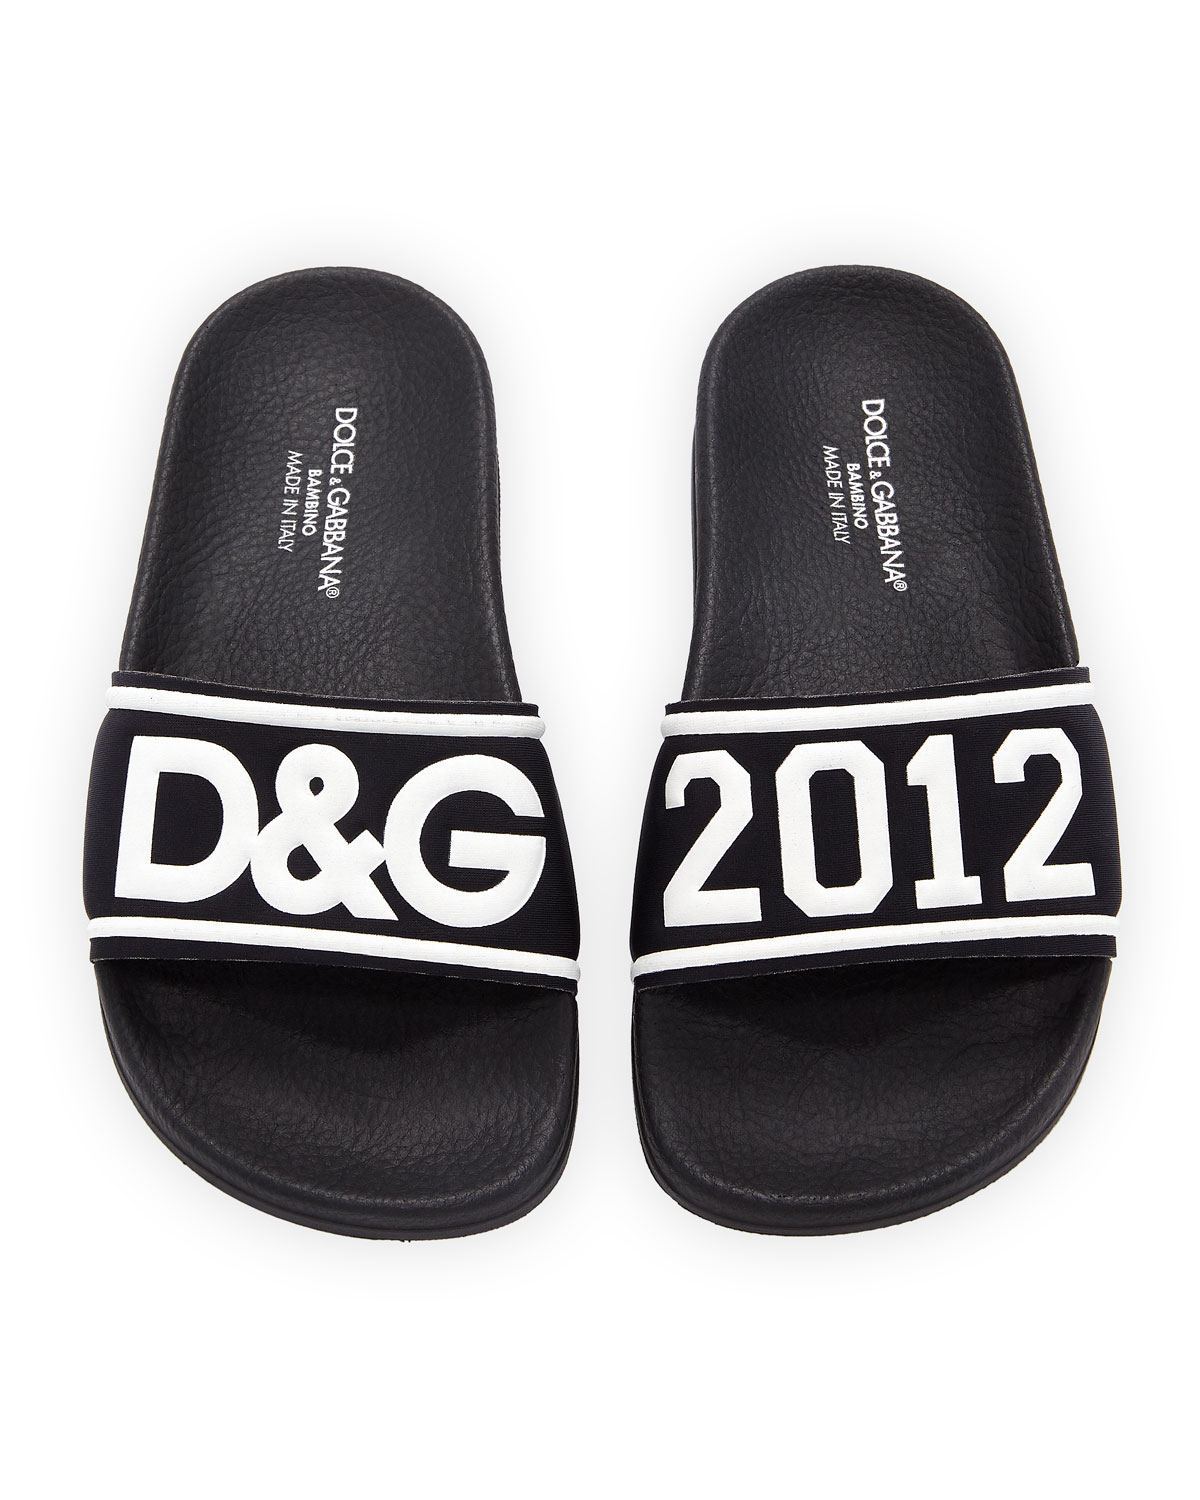 Chiabatta D & G 2012 Pool Slide Sandals, Toddler/Kids